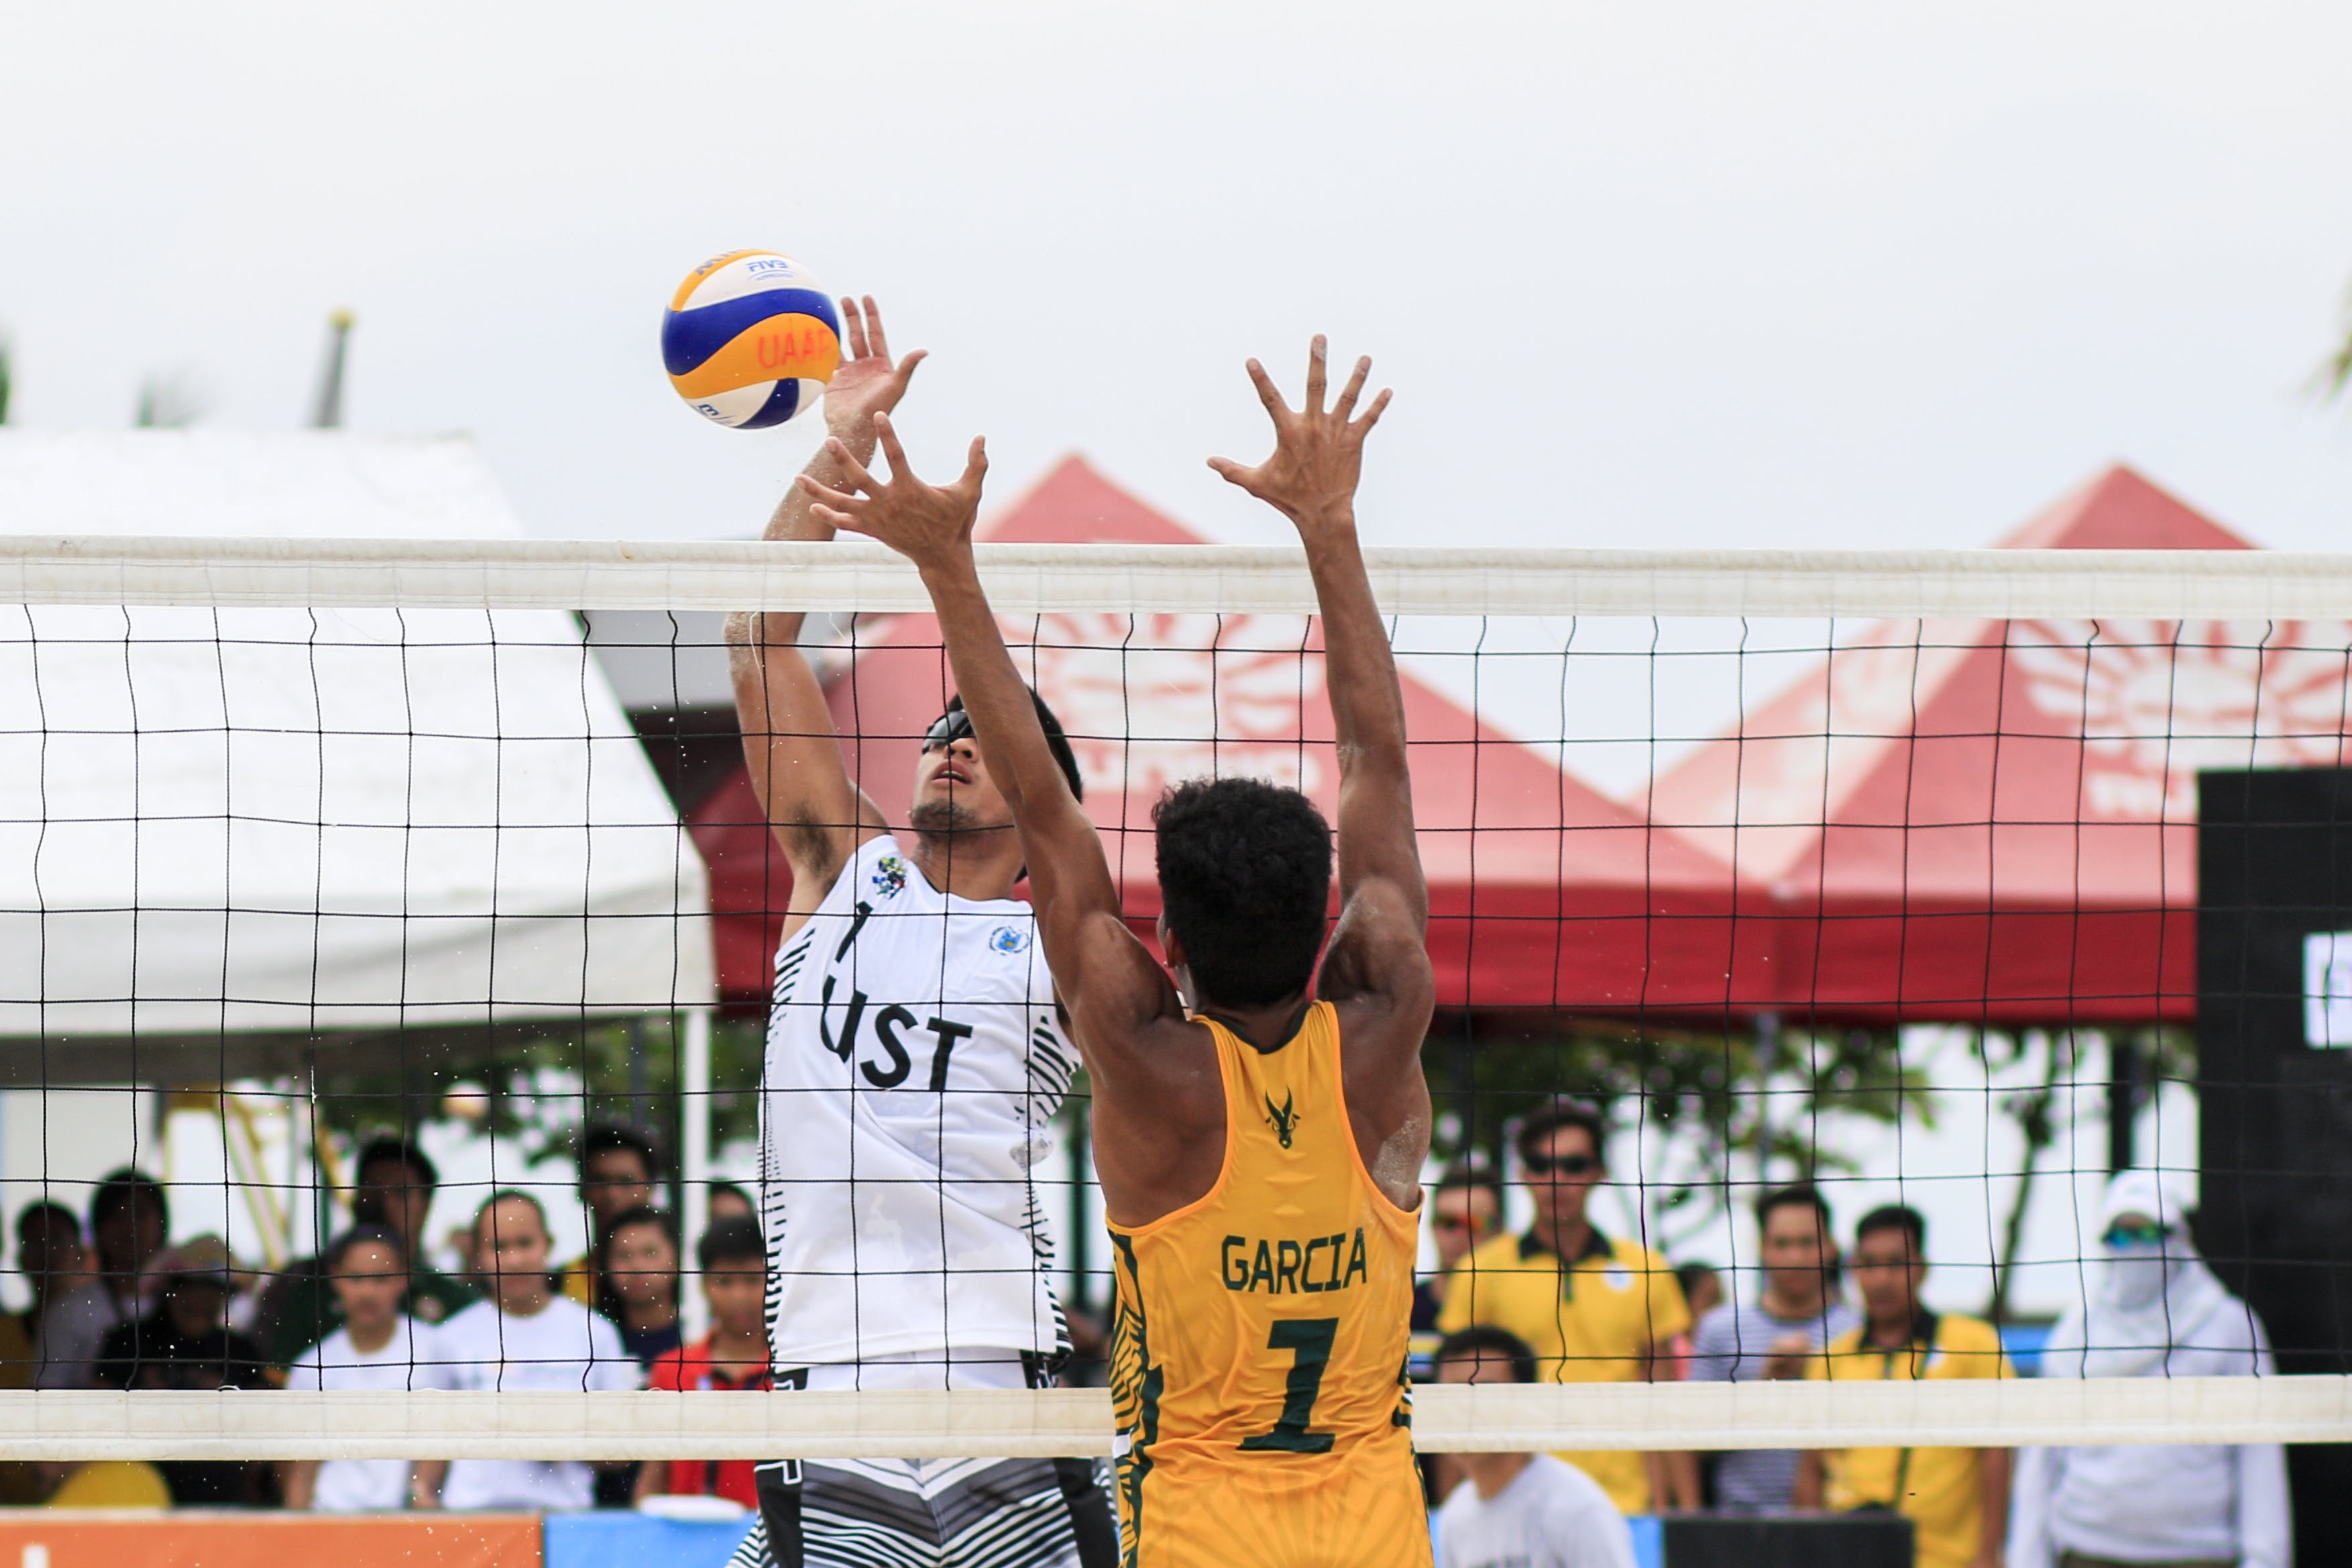 Two Men Playing Volleyball Near Red Canopy